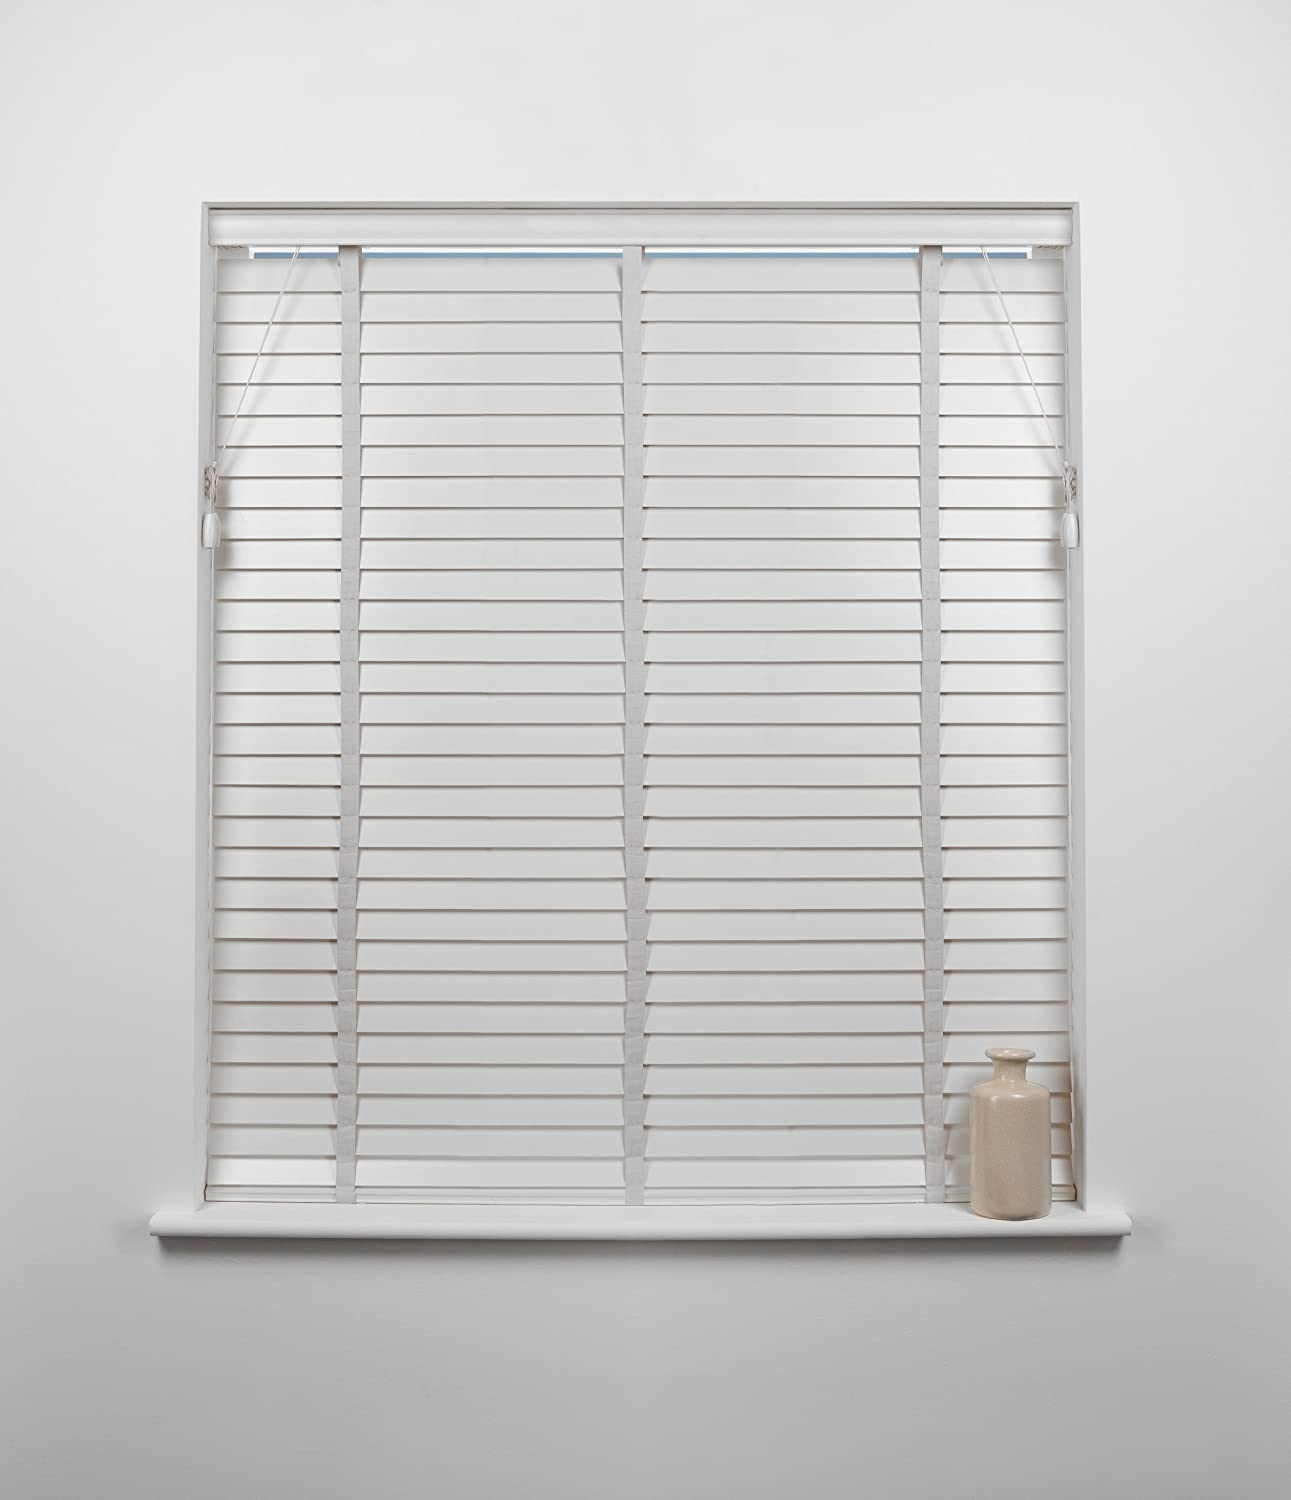 50mm Wood Venetian Blind, White, 120cm Wide x 160cm Drop Sunflex